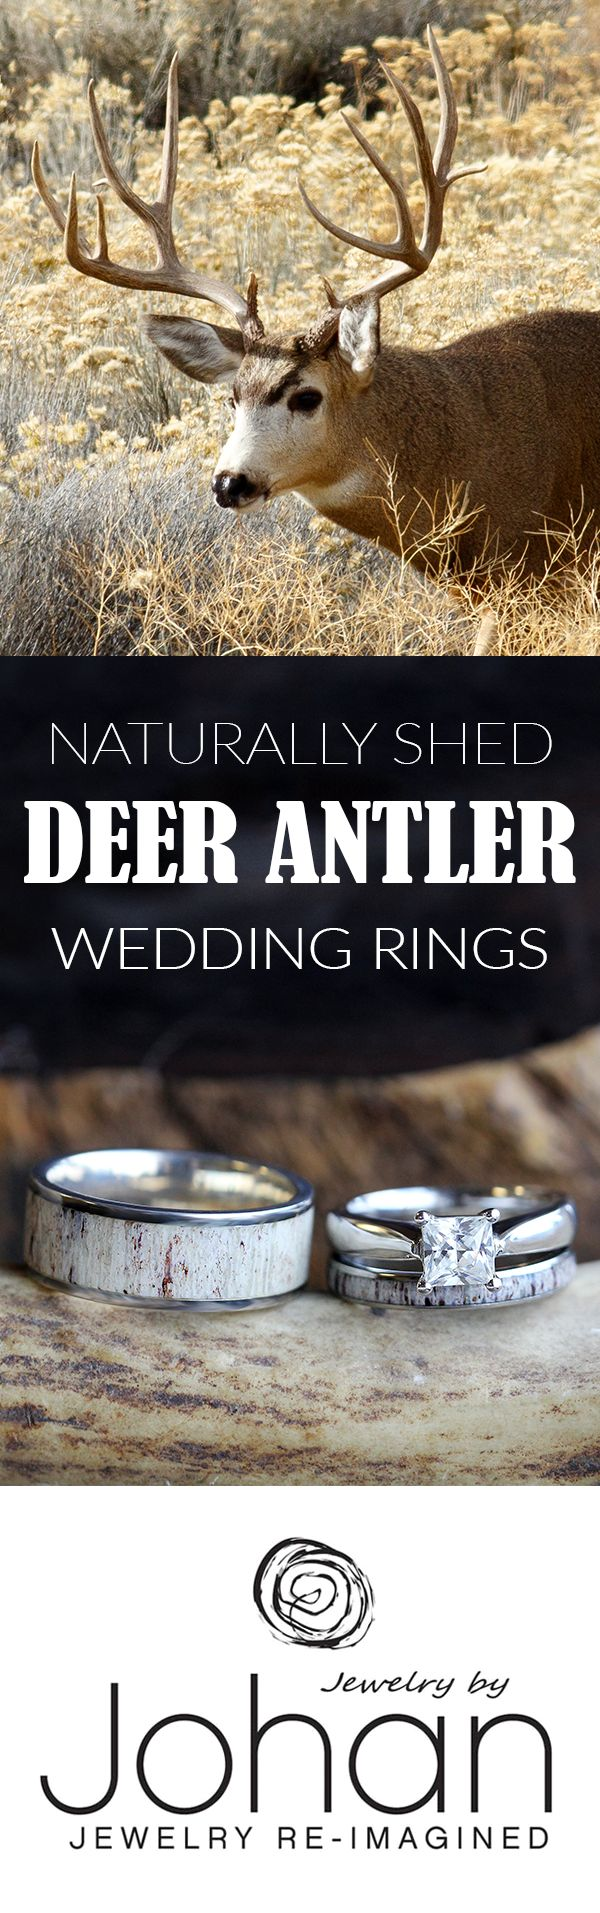 Your love of hunting and the outdoors will shine through with our deer antler wedding rings. Use one of our naturally shed antlers, or provide us the antlers from a trophy buck of your own!